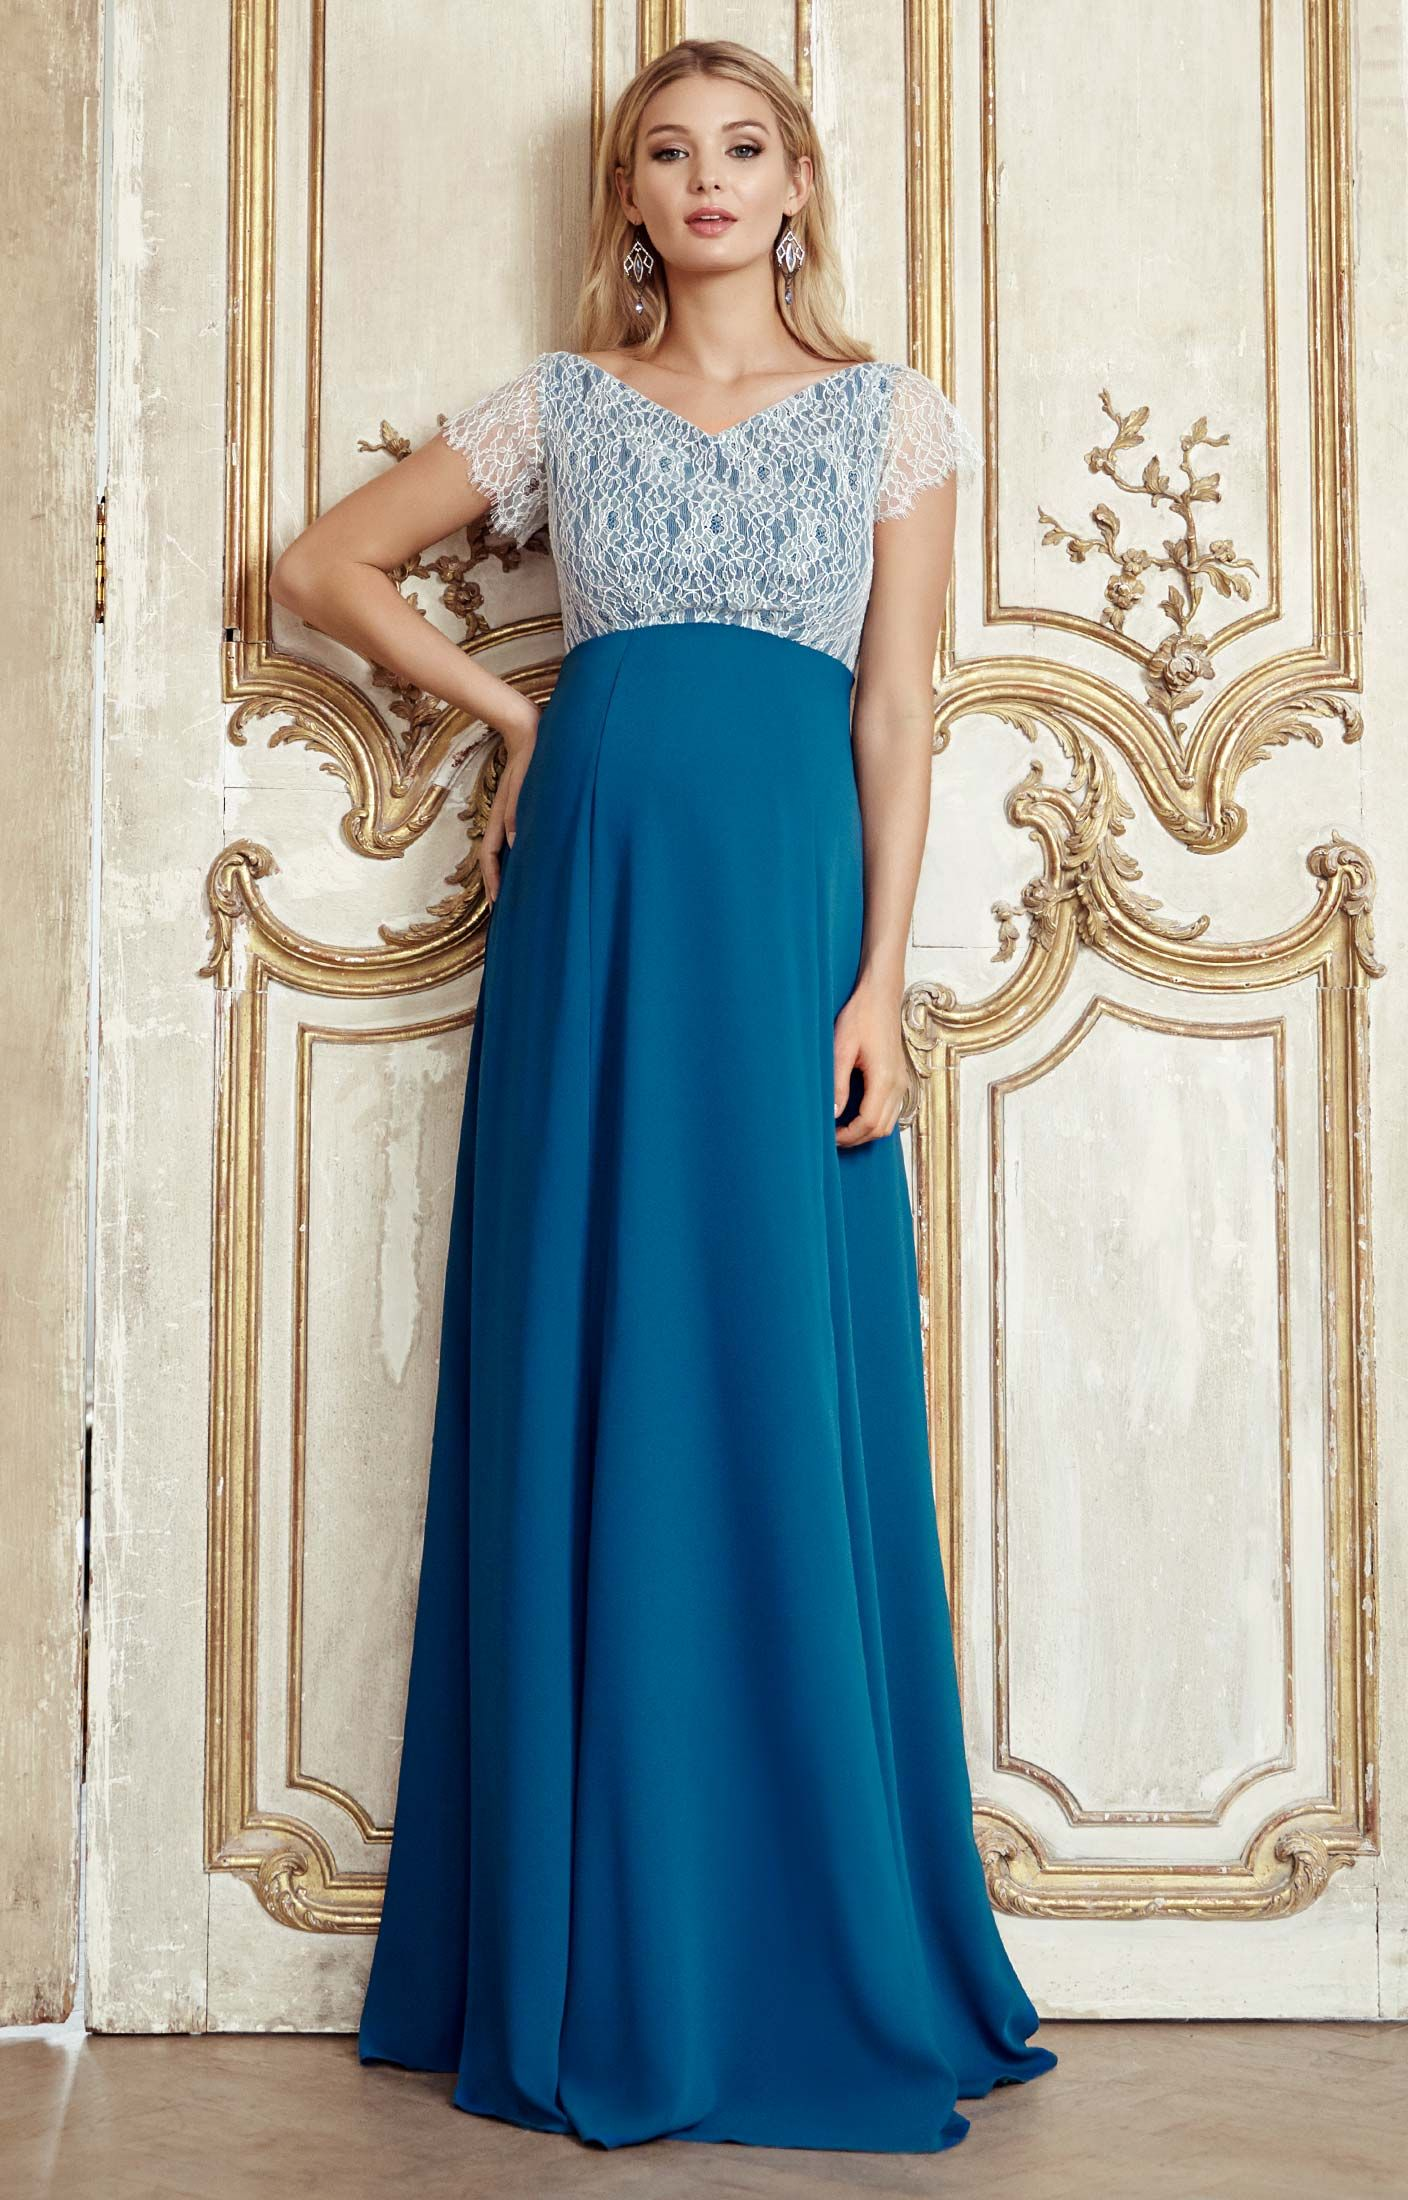 8729e45d0e4 ... Our Eleanor full-length blue-green maternity gown is a magical dress  for any occasion. From the luxurious lace bodice in pale aqua tones to the  dramatic ...